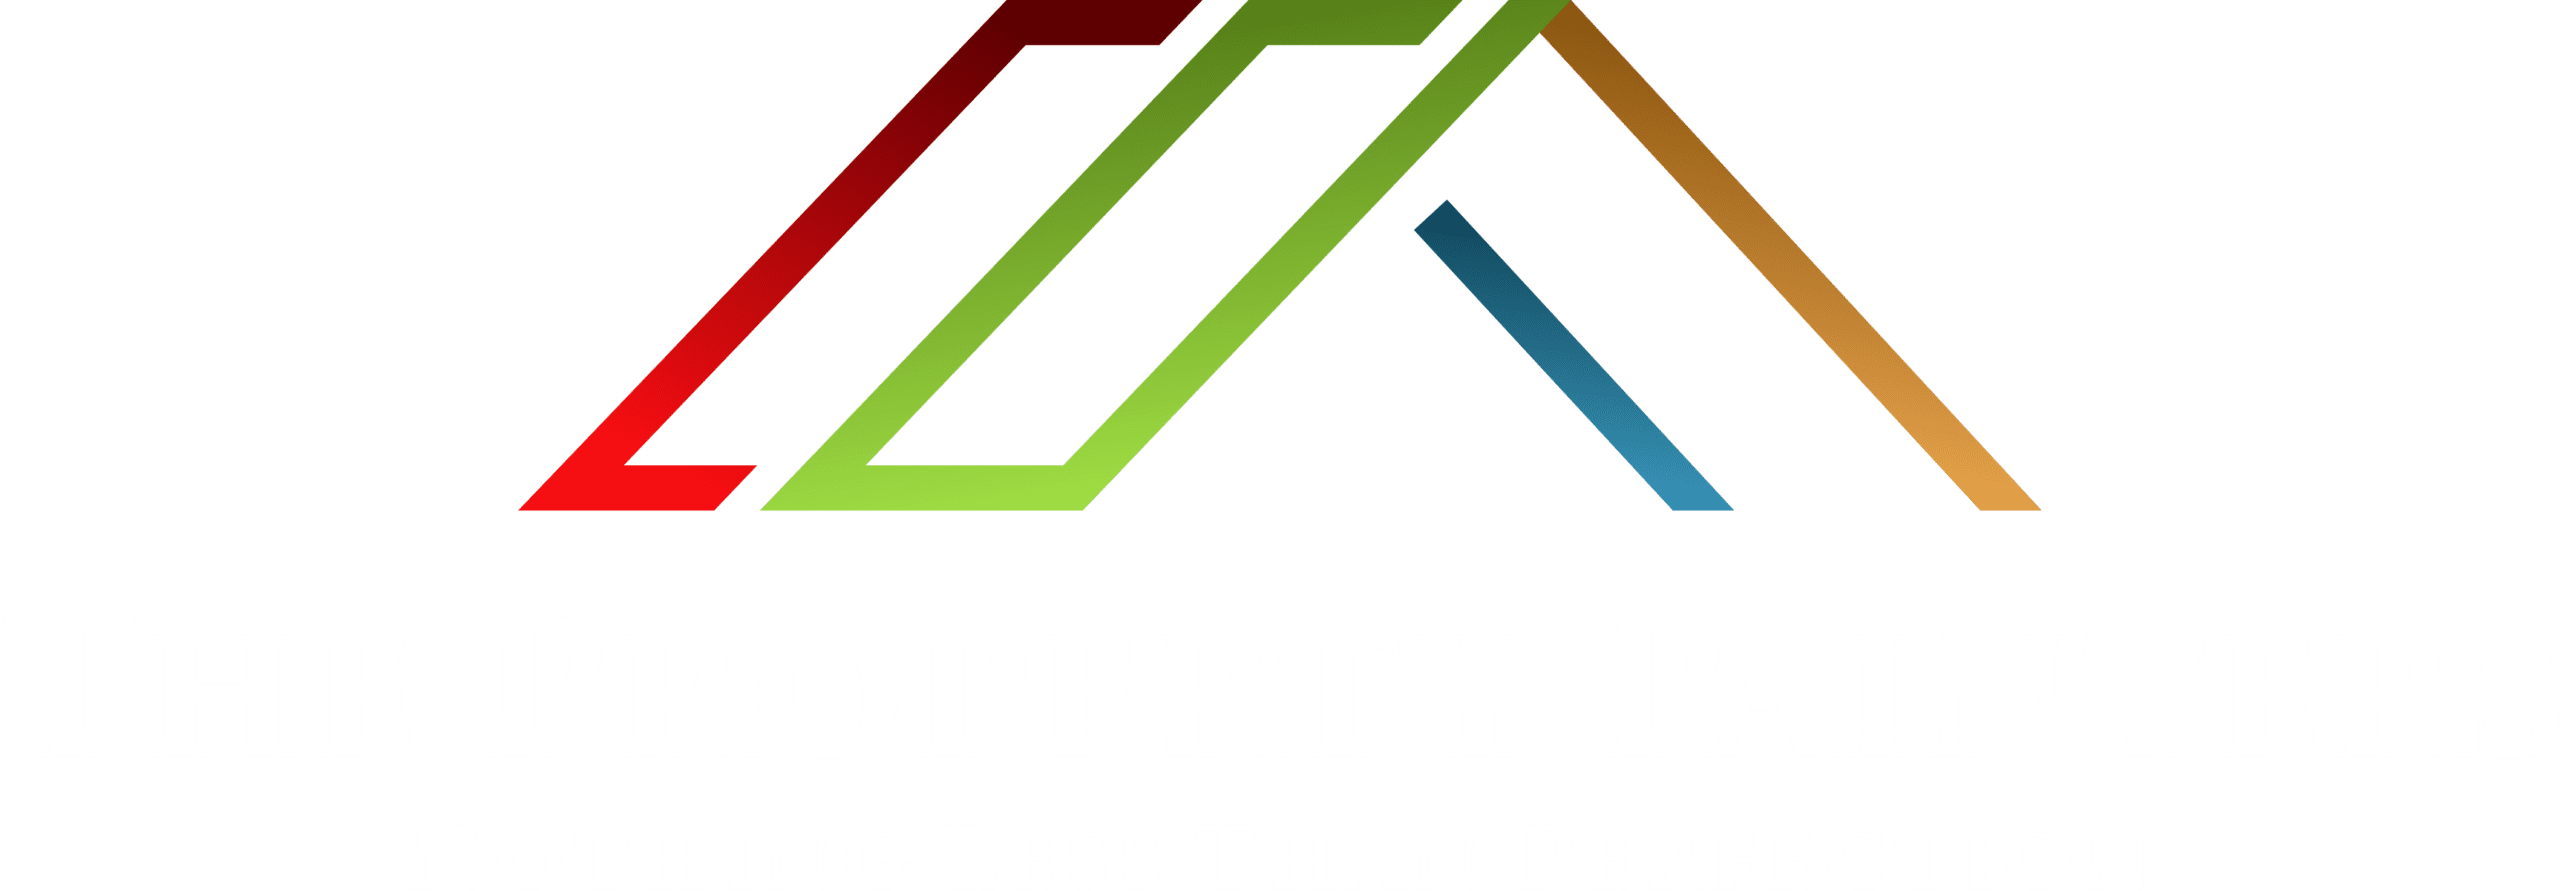 The Property Painters